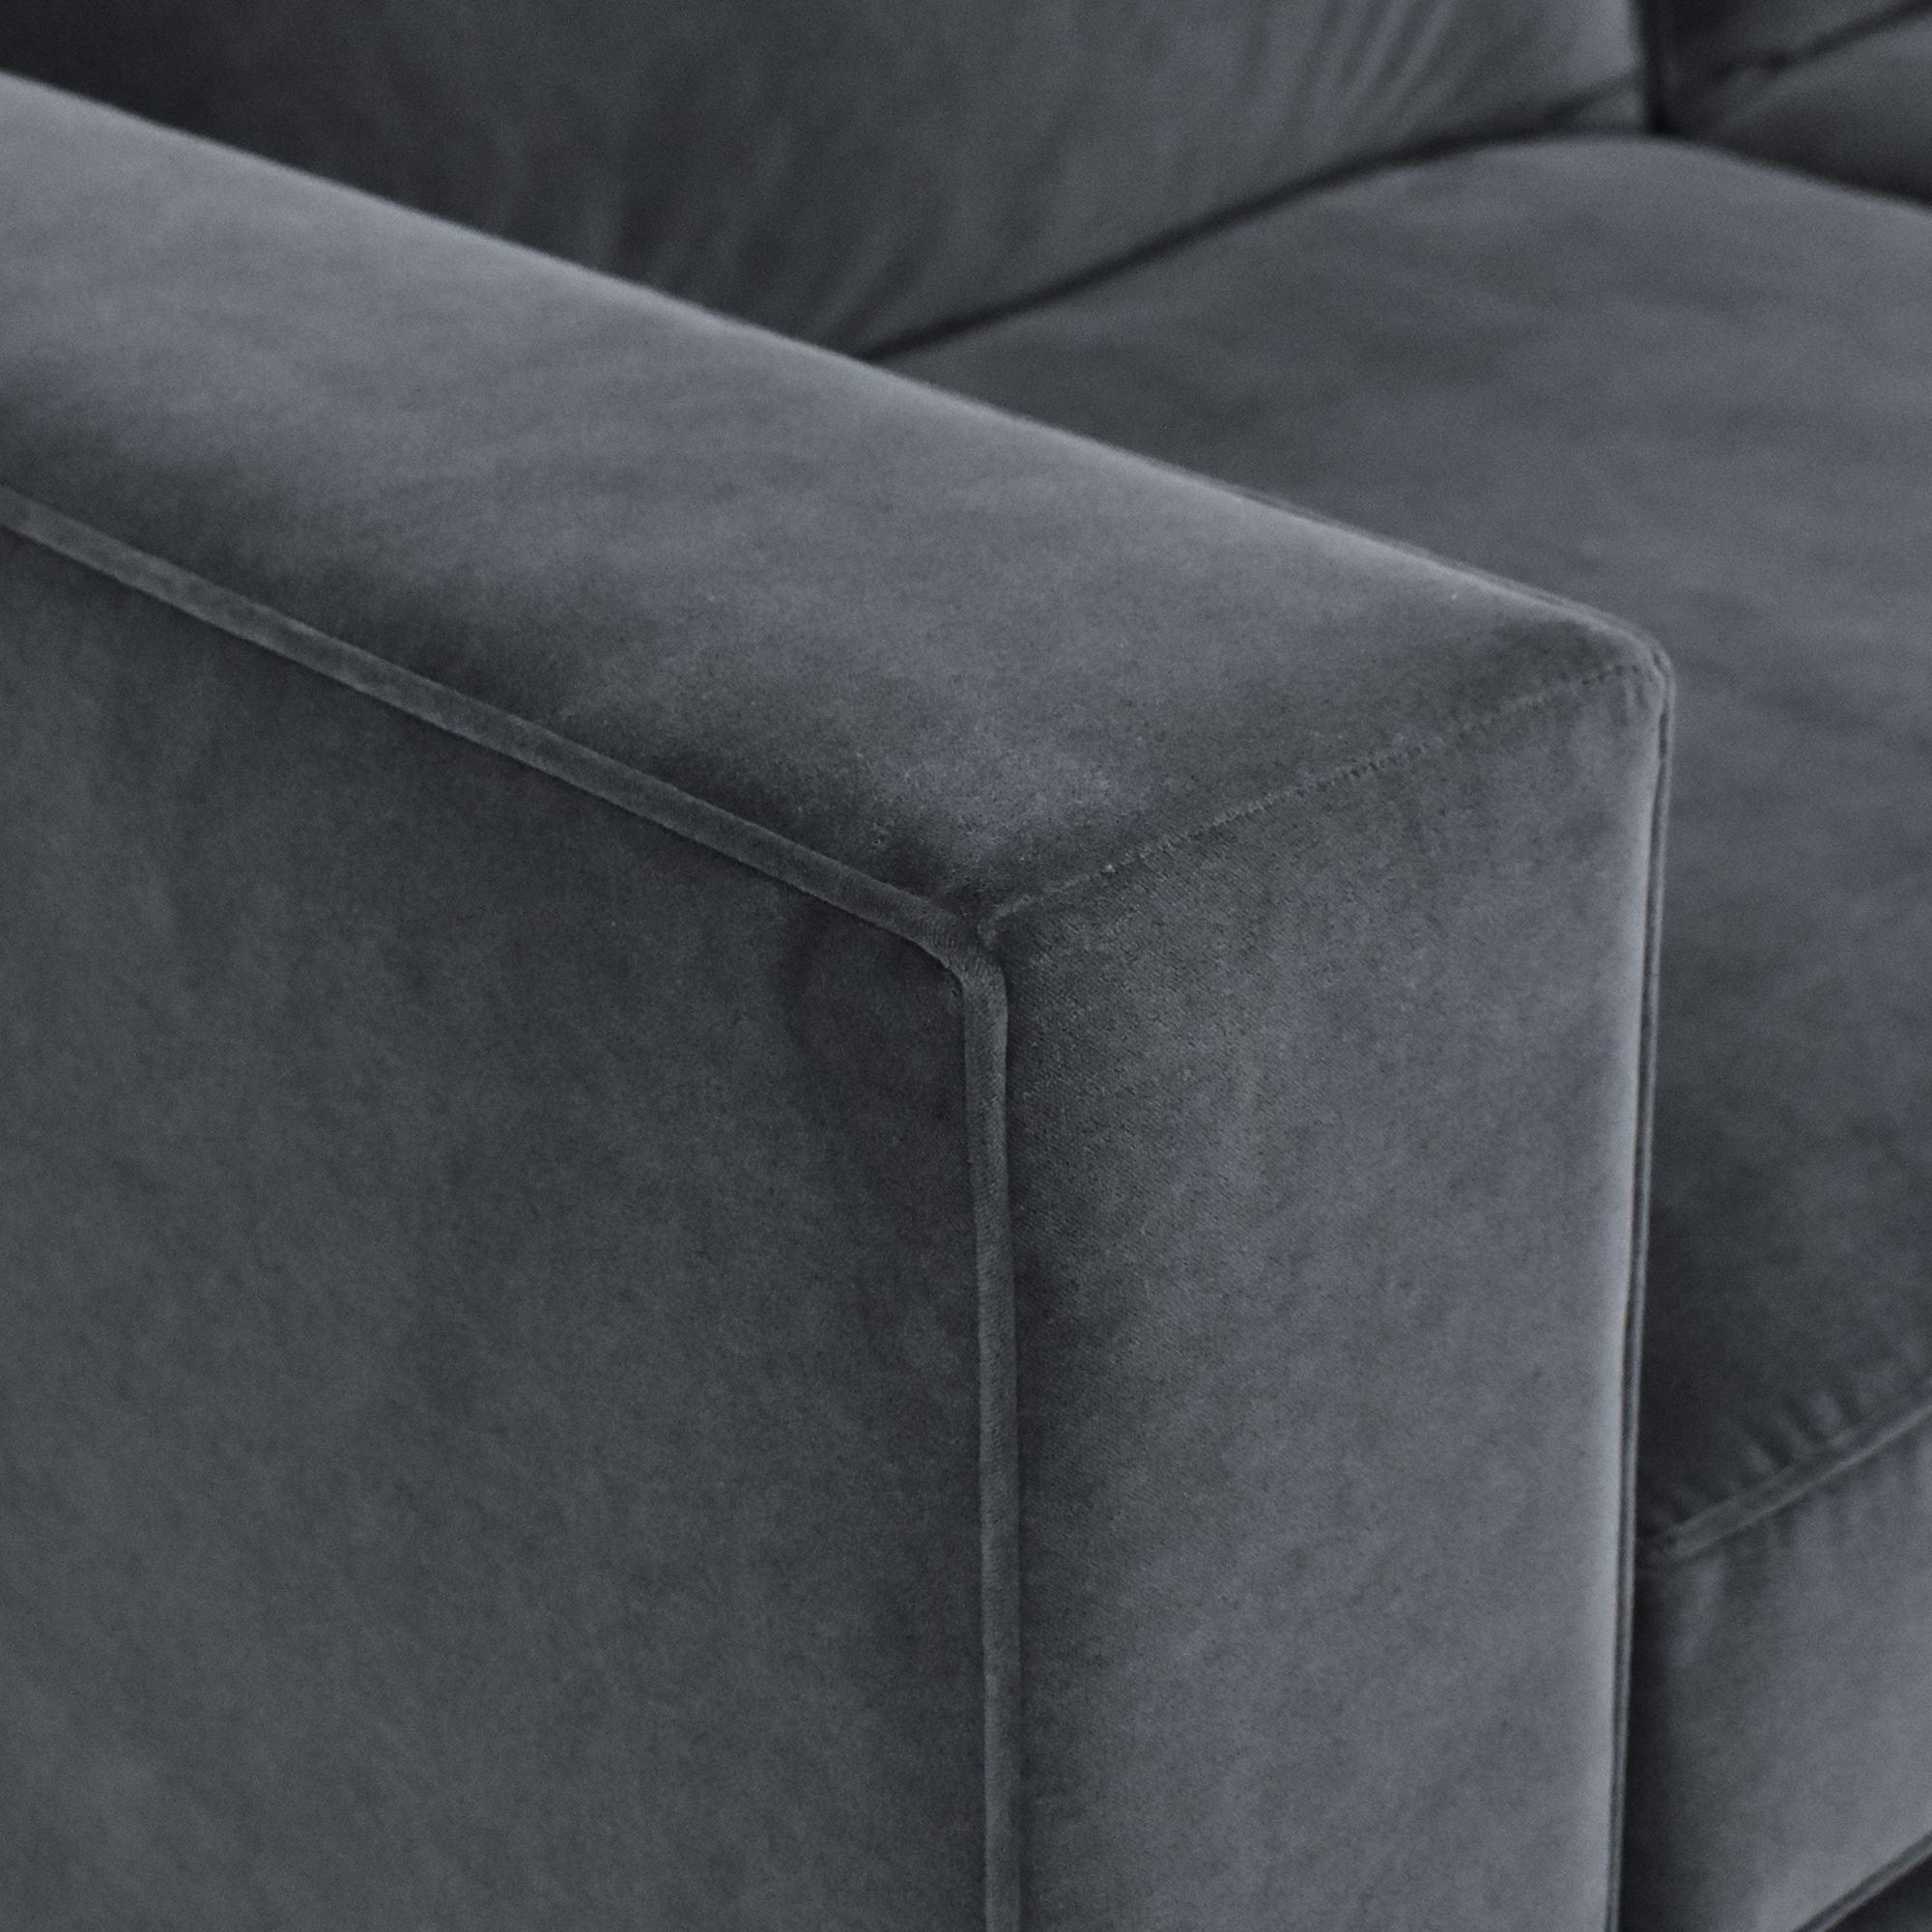 Restoration Hardware Restoration Hardware Maddox Sectional Sofa with Ottoman used